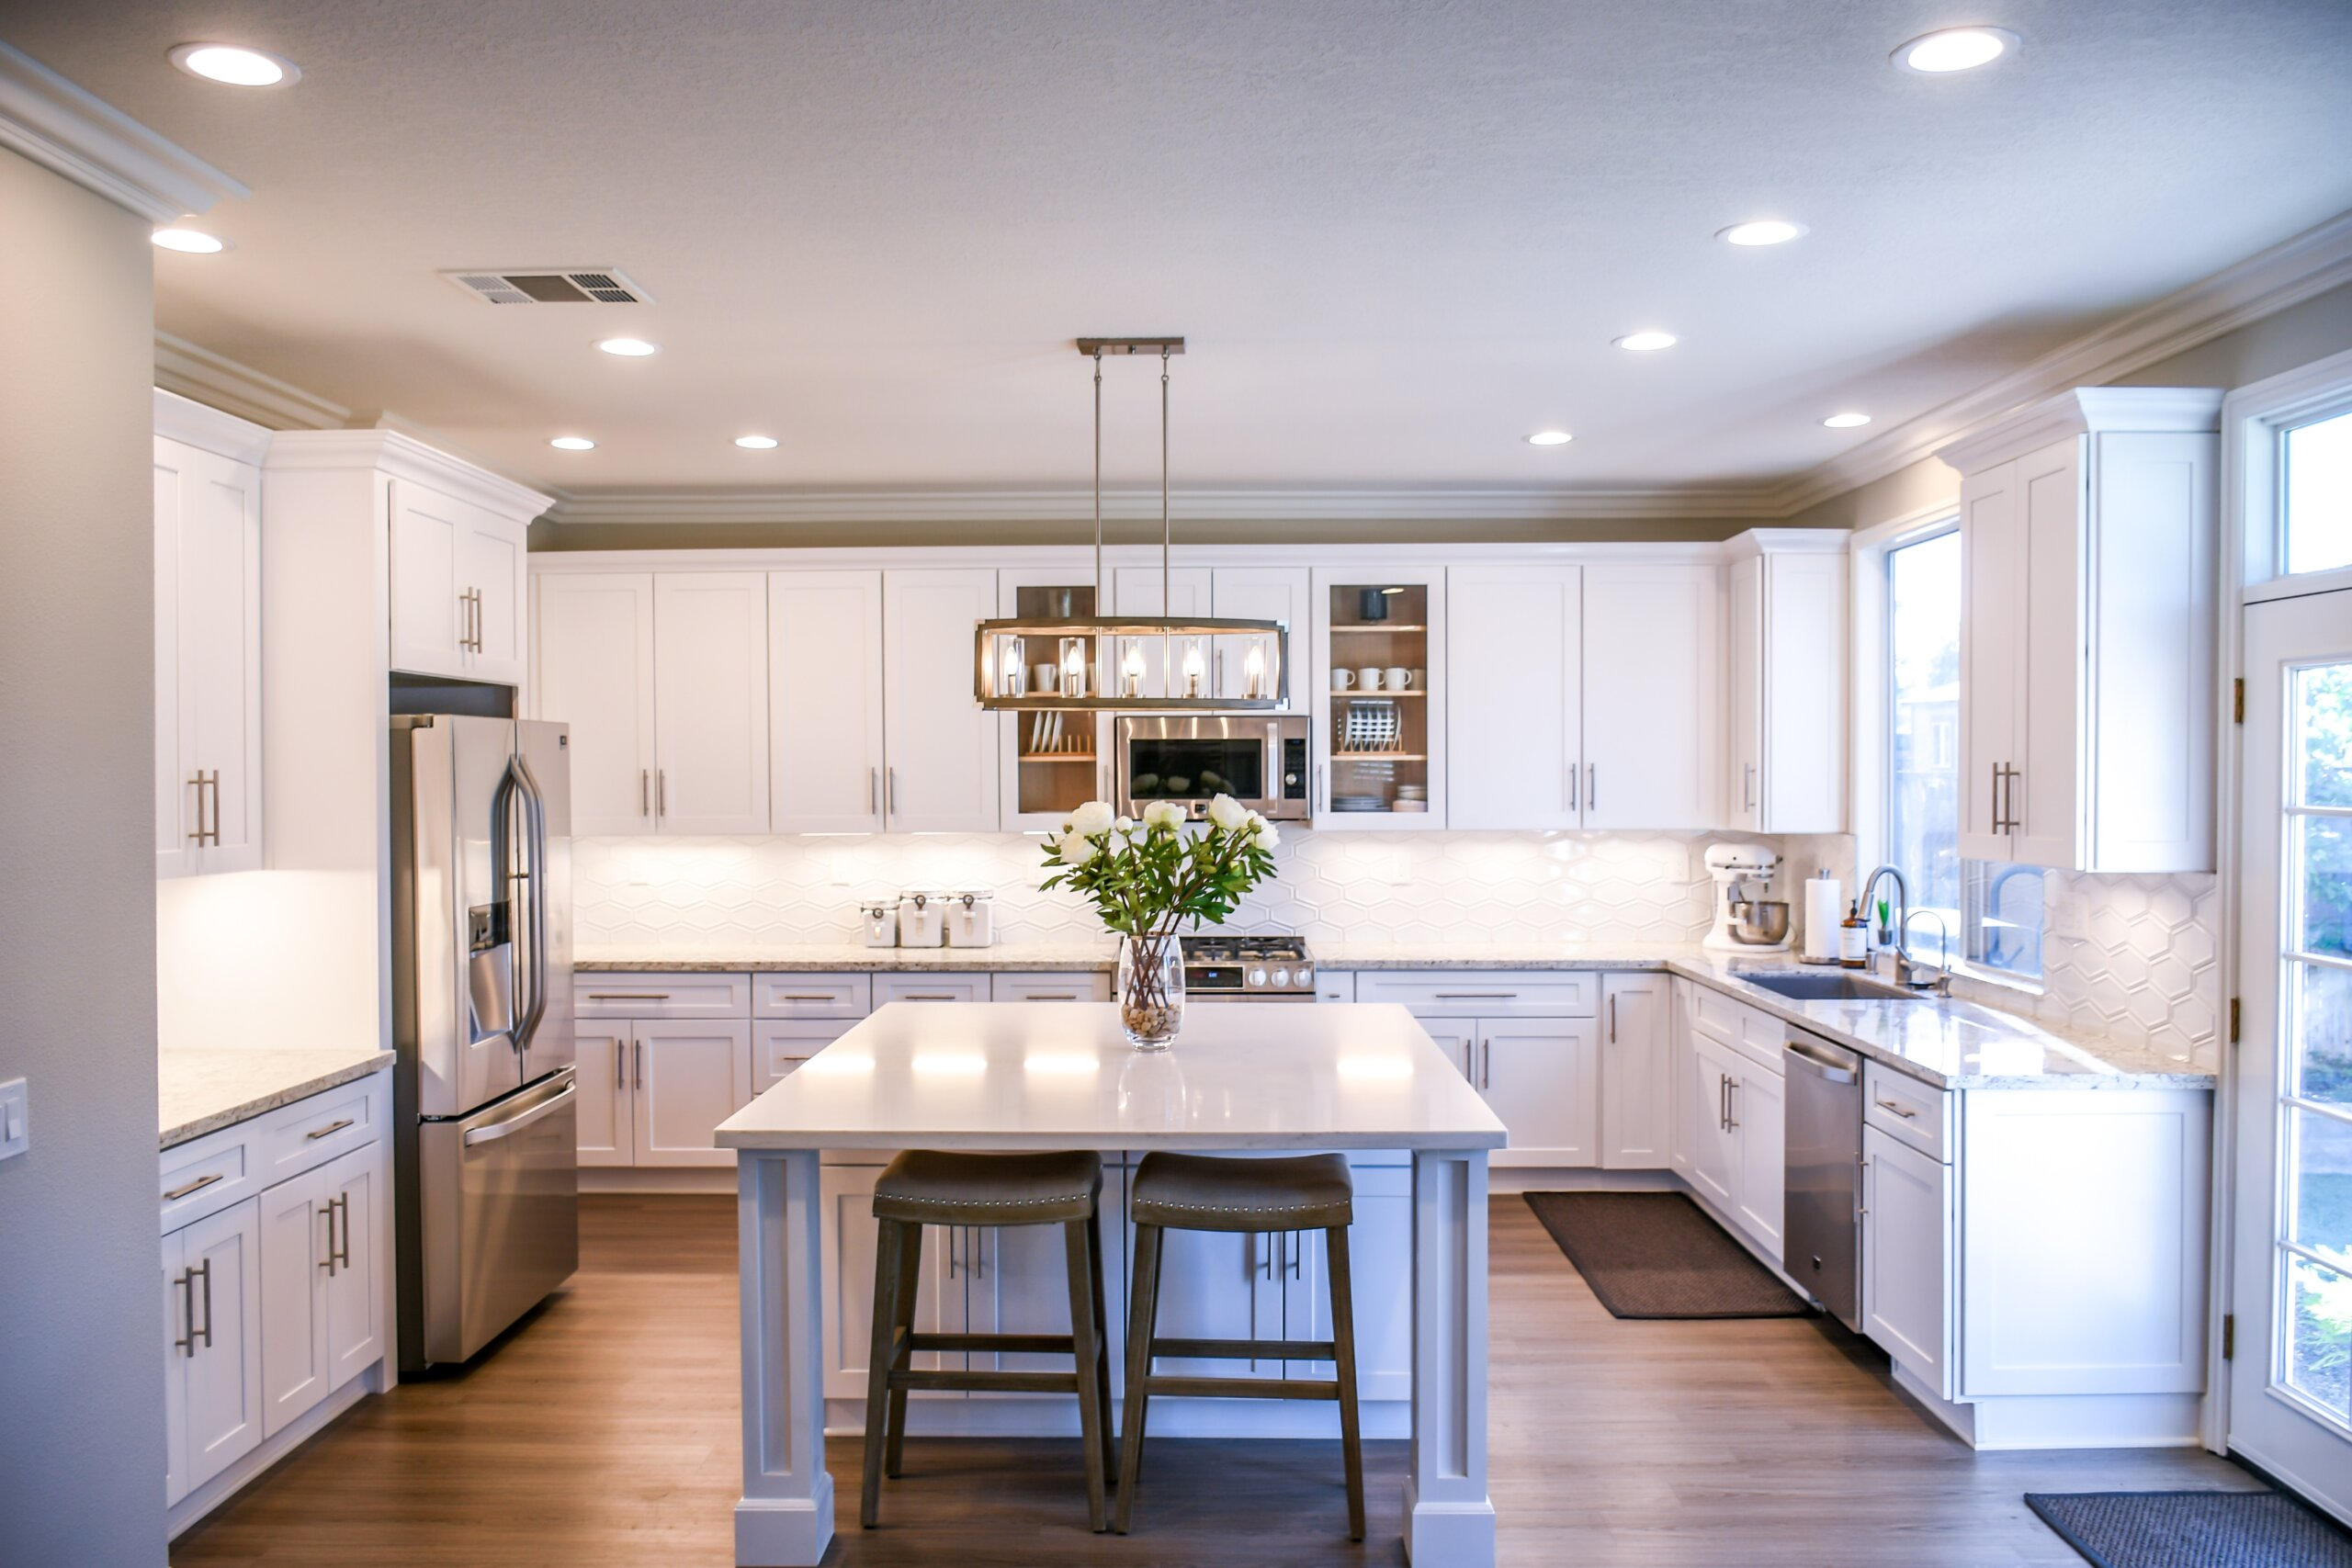 open house during covid-19 header image: pciture of a well-lit kitchen with white cupboards and hardwood floor